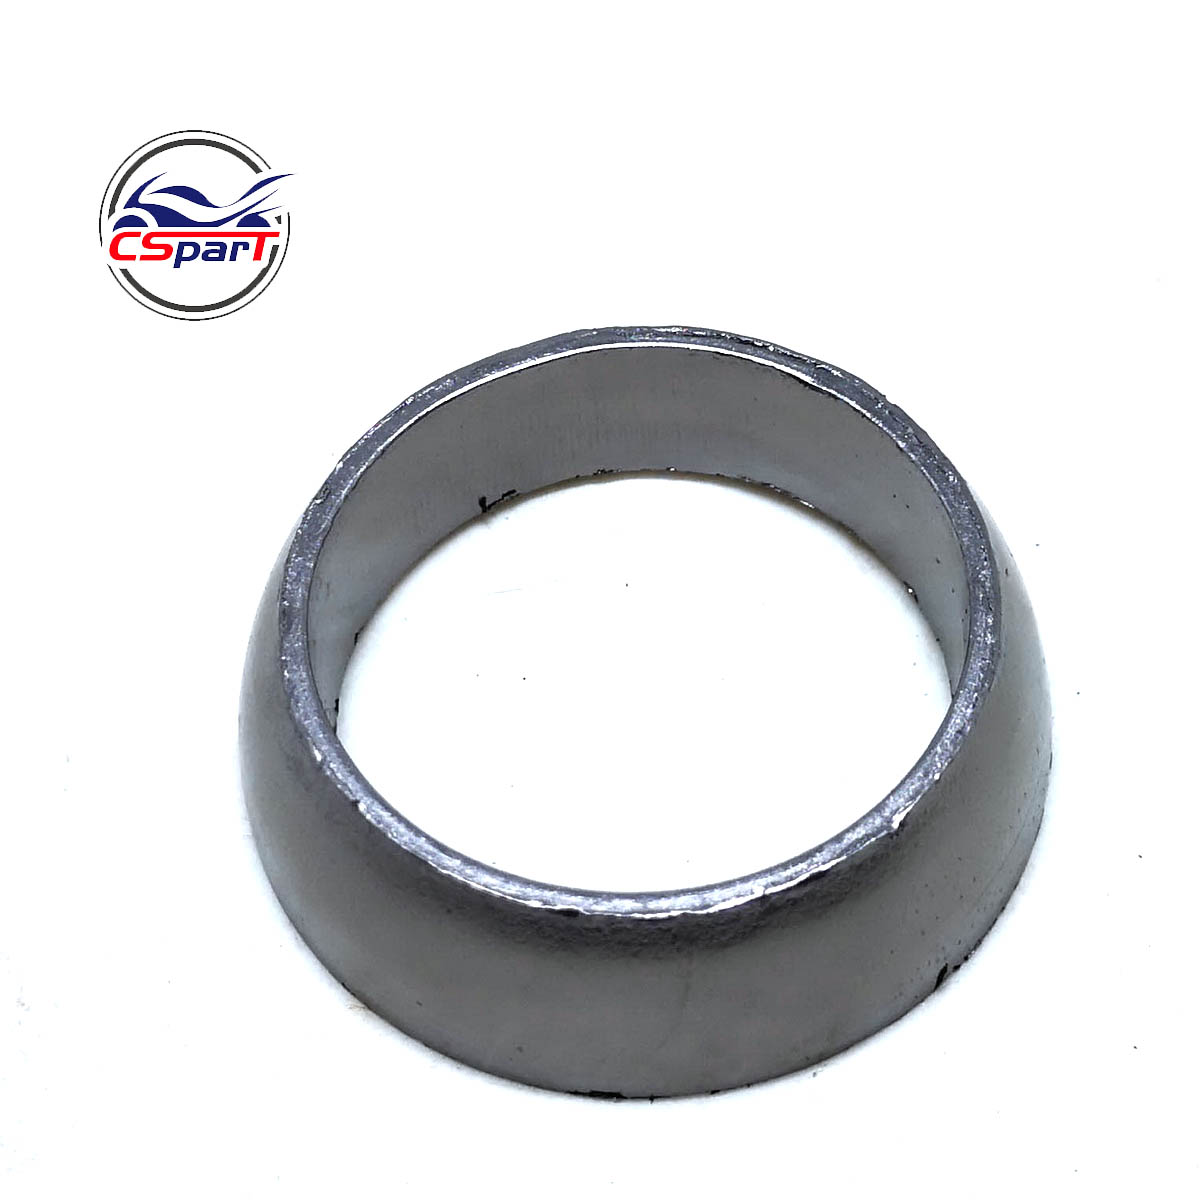 Exhaust Gasket Donut Socket Seal For Polaris Sportsman 600 700 800 3610047